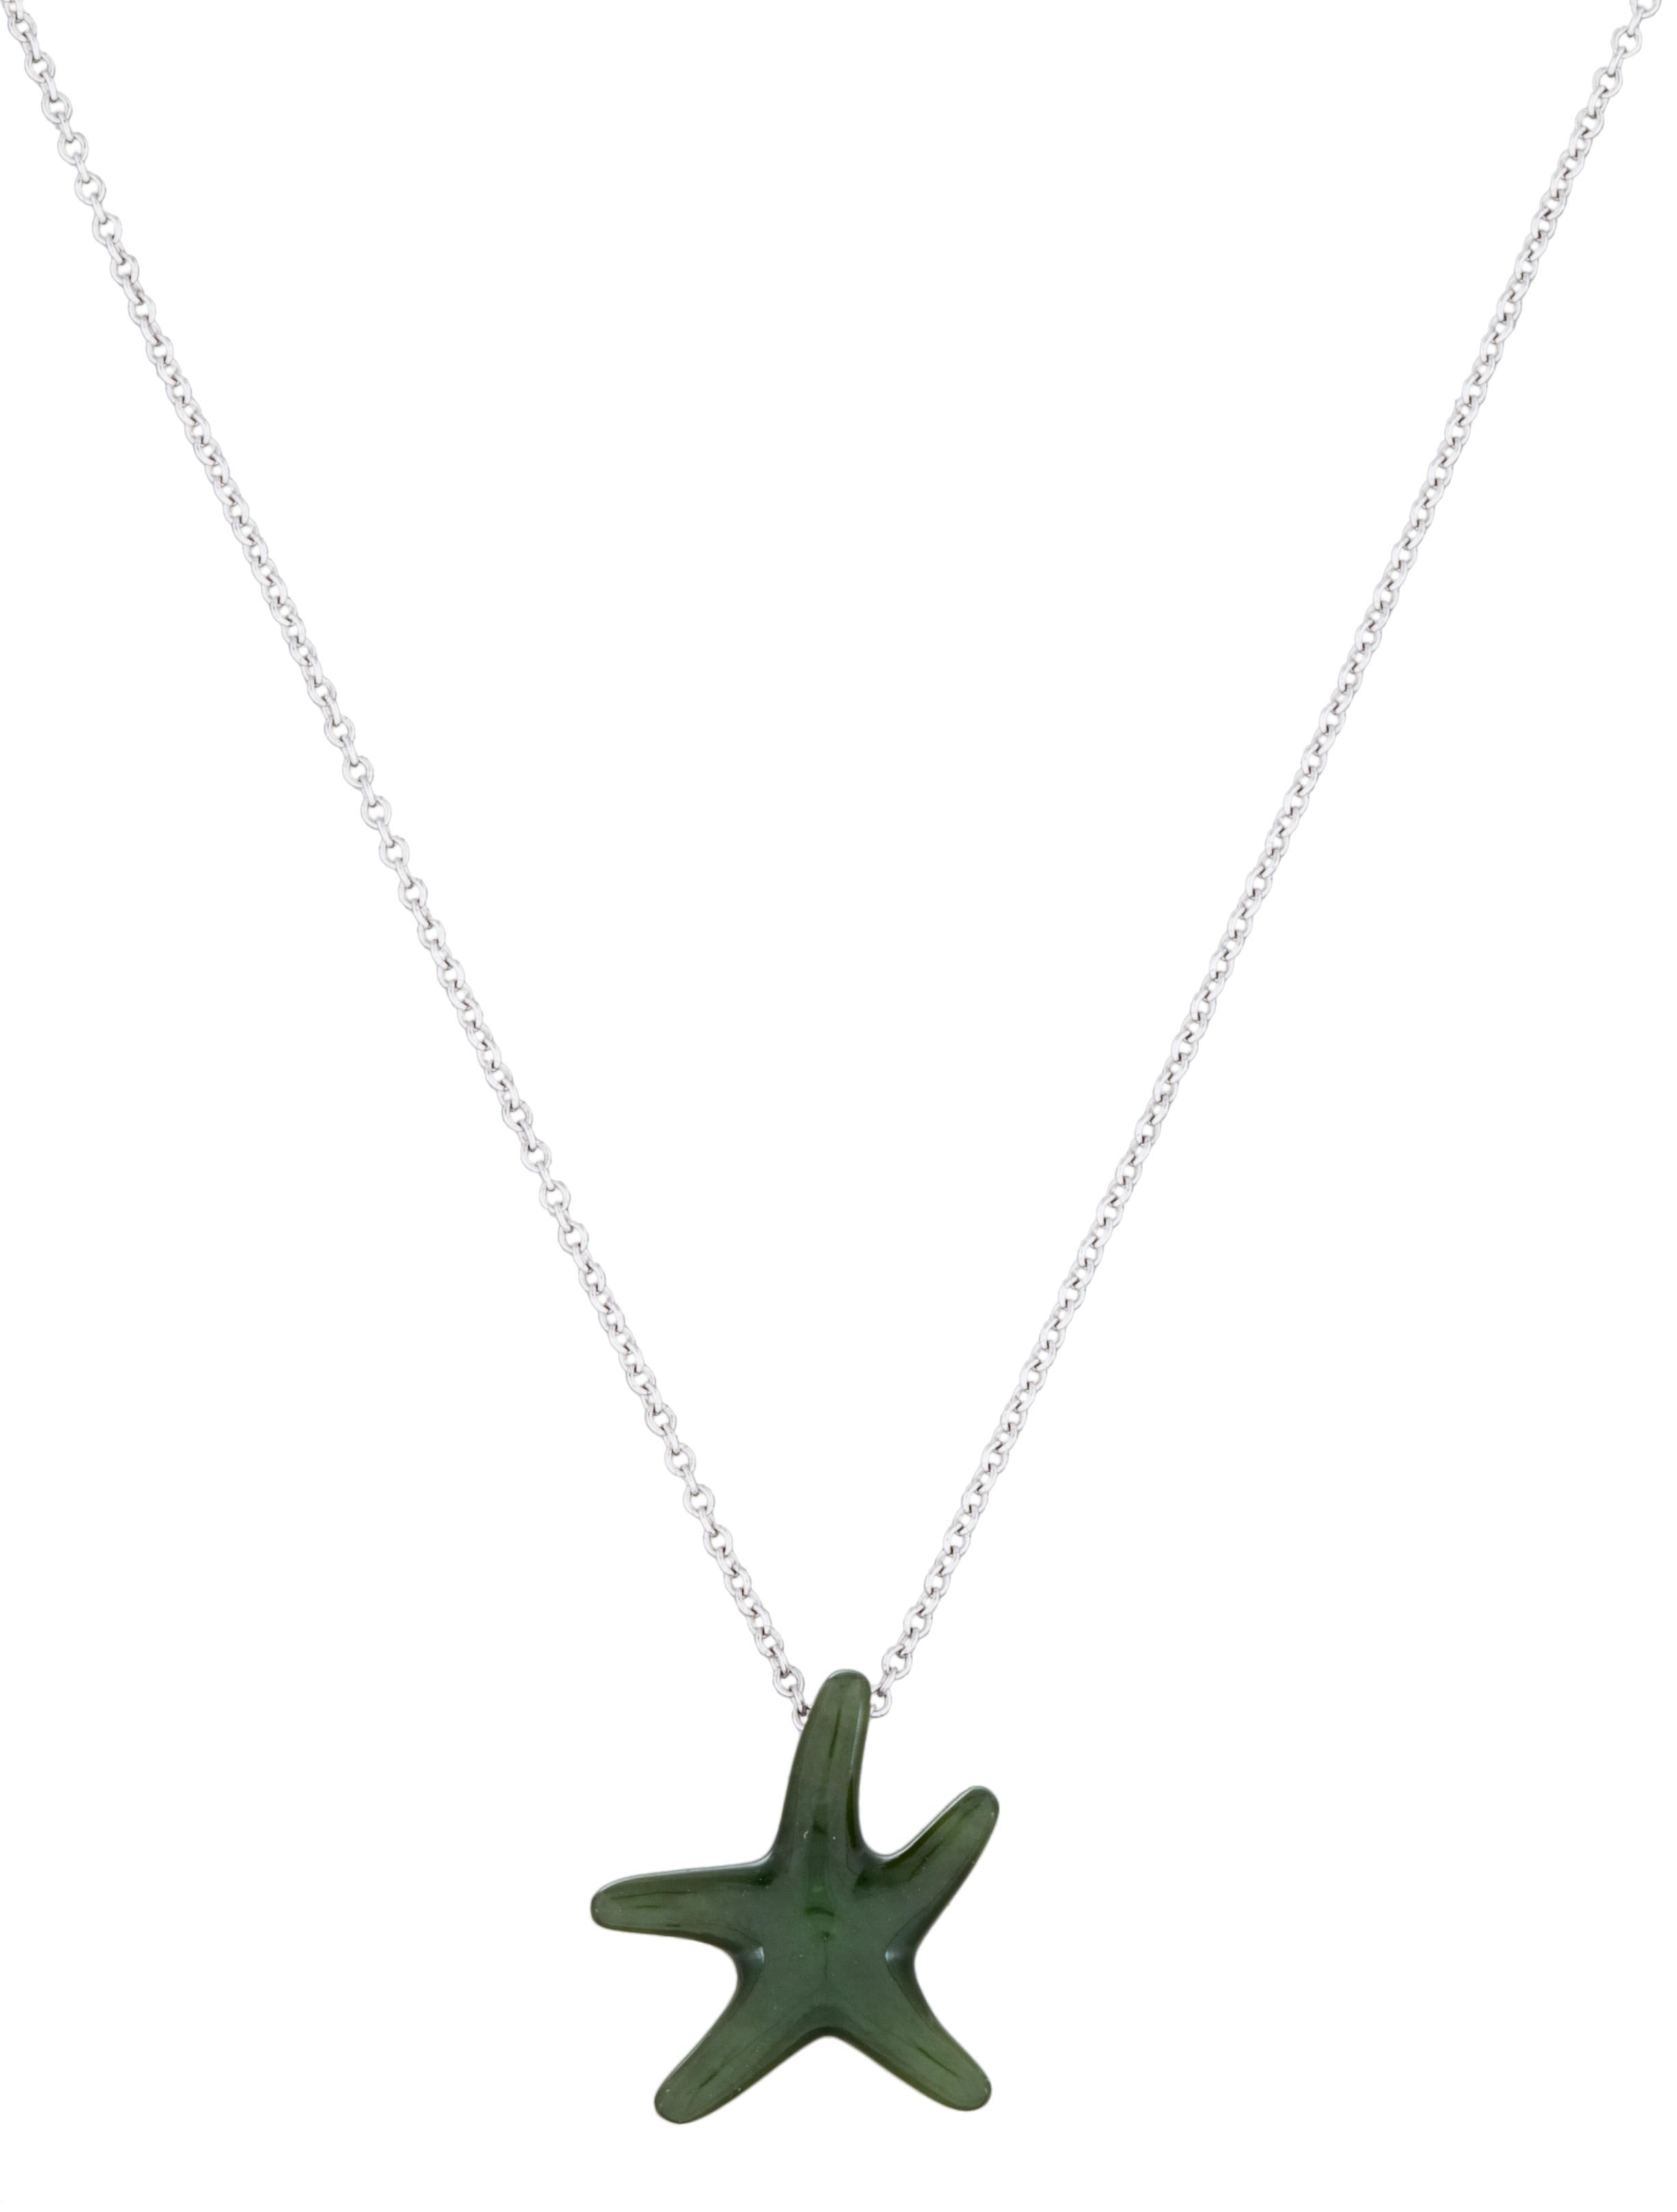 dfed4a385 Tiffany & Co. Jade Starfish Pendant Necklace - Necklaces - TIF31665 ...